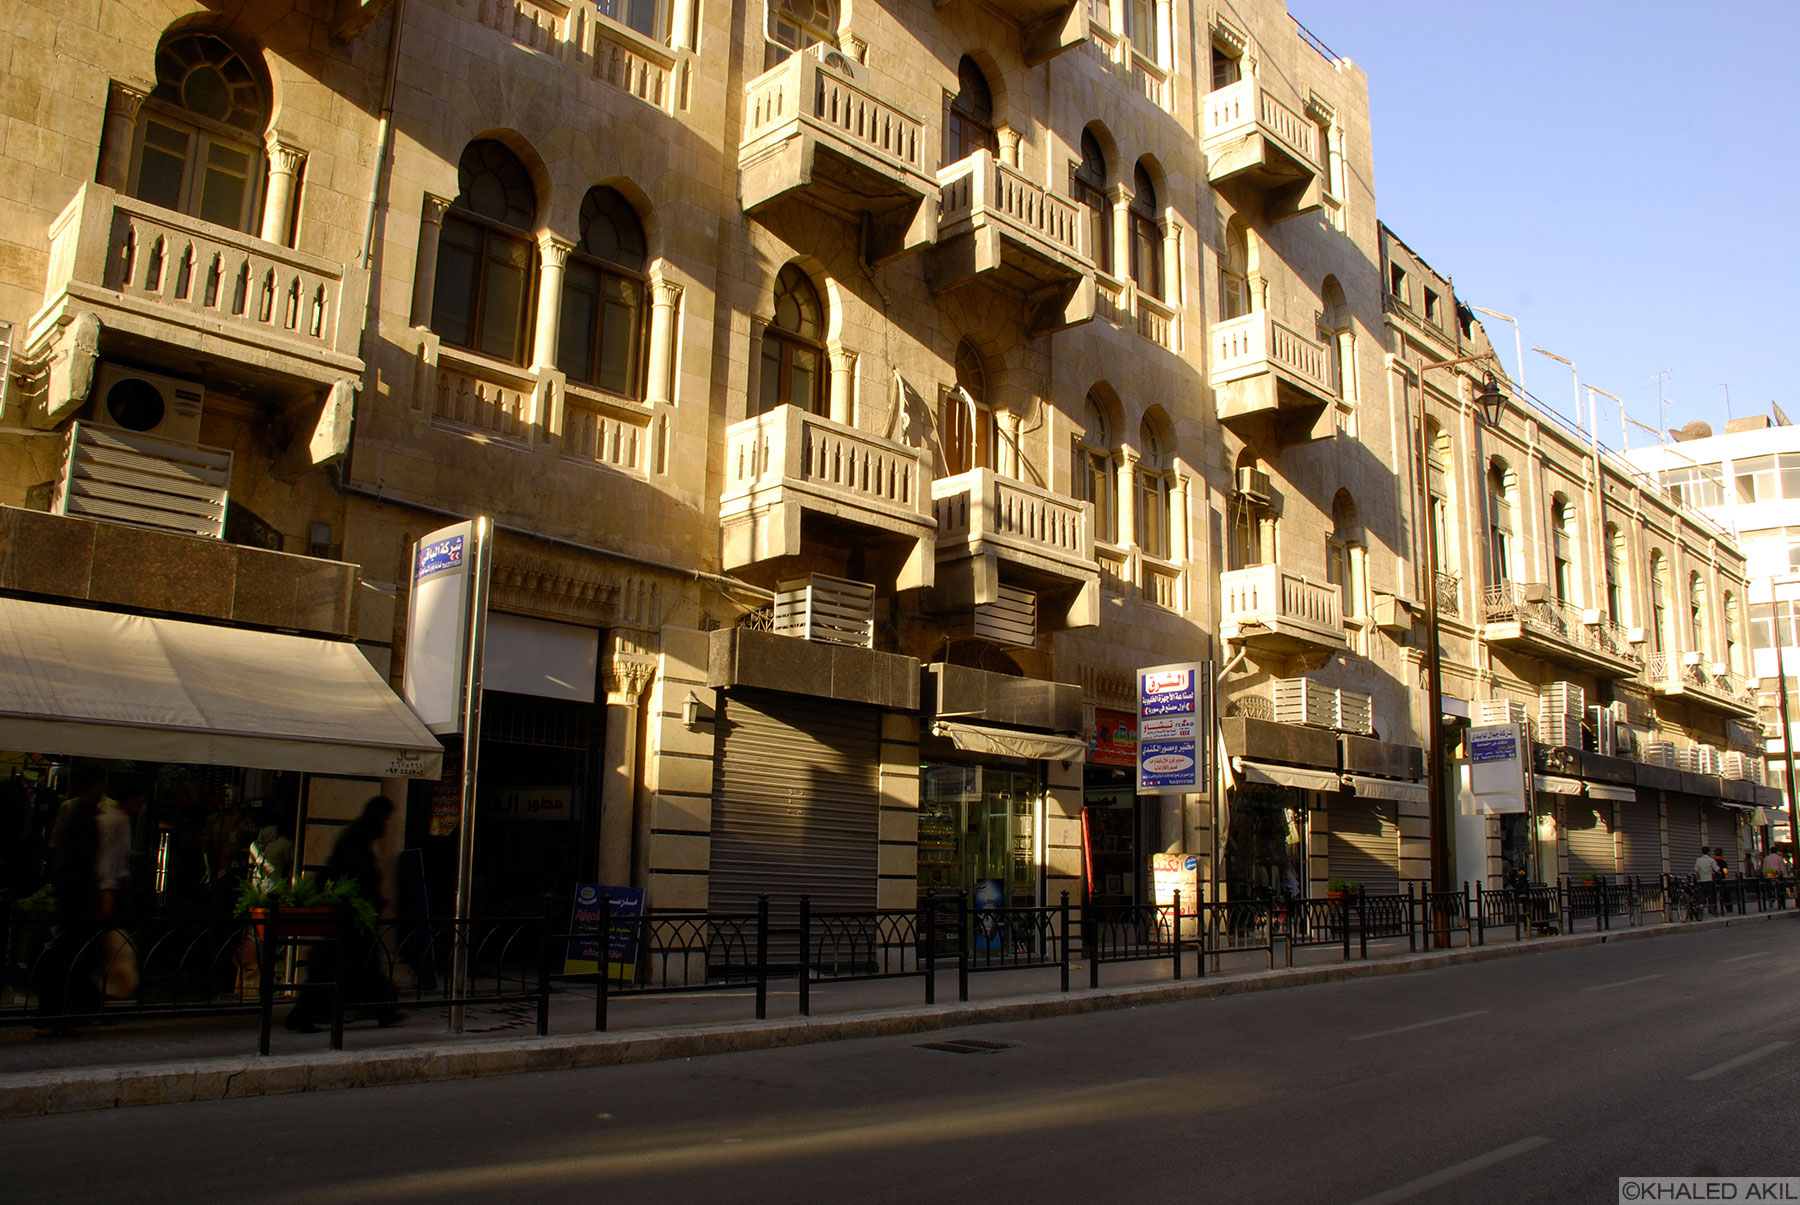 Aleppo is the most populous city in Syria, with a population of 2,132,100 as indicated in the latest official census in 2004 by the Syria Central Bureau of Statistics (CBS).